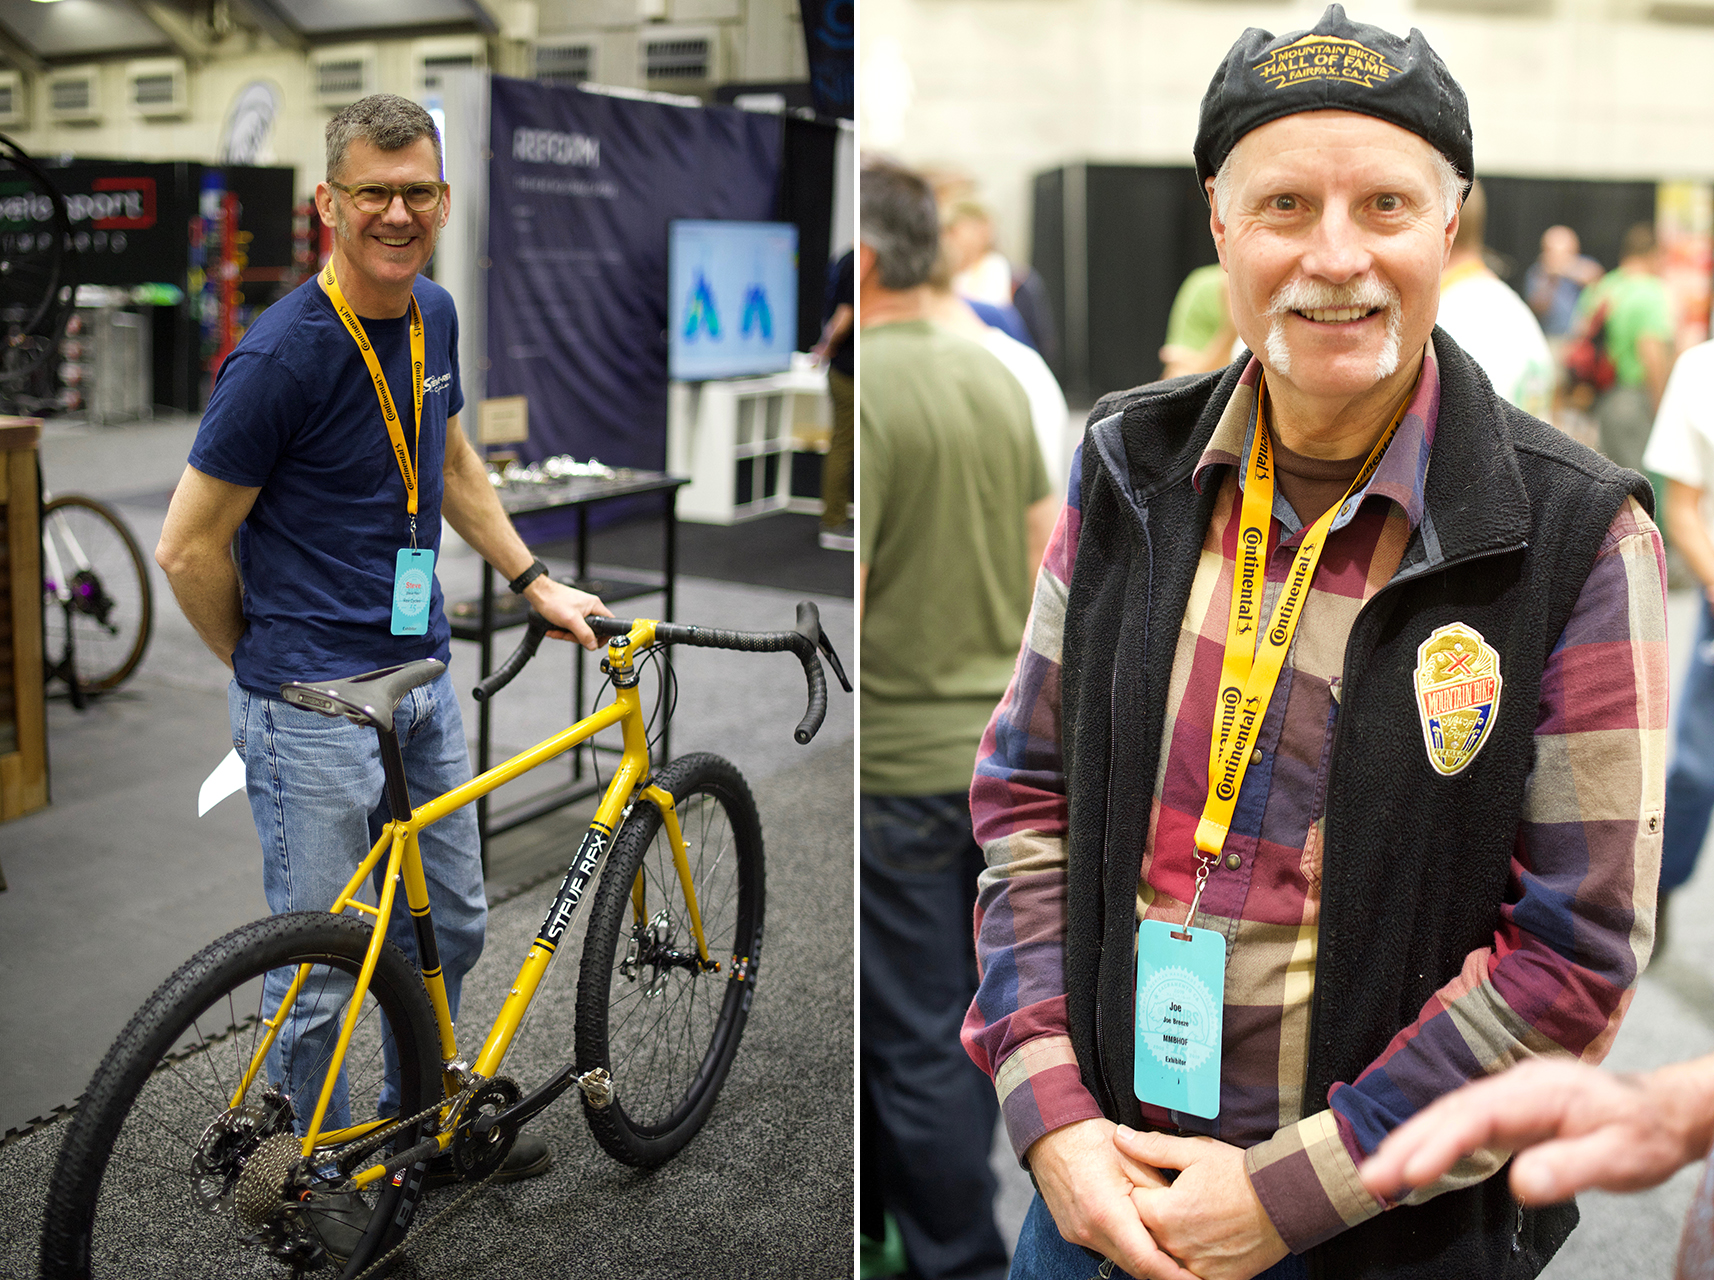 L to R. Frame builder Steve Rex caught in the act of wheeling his gravel bike off for judging. His city bike won best in its class. Mountain bike legend Joe Breeze was hanging out at the Marin Mountain Bike Museum booth visiting with friends and telling stories.